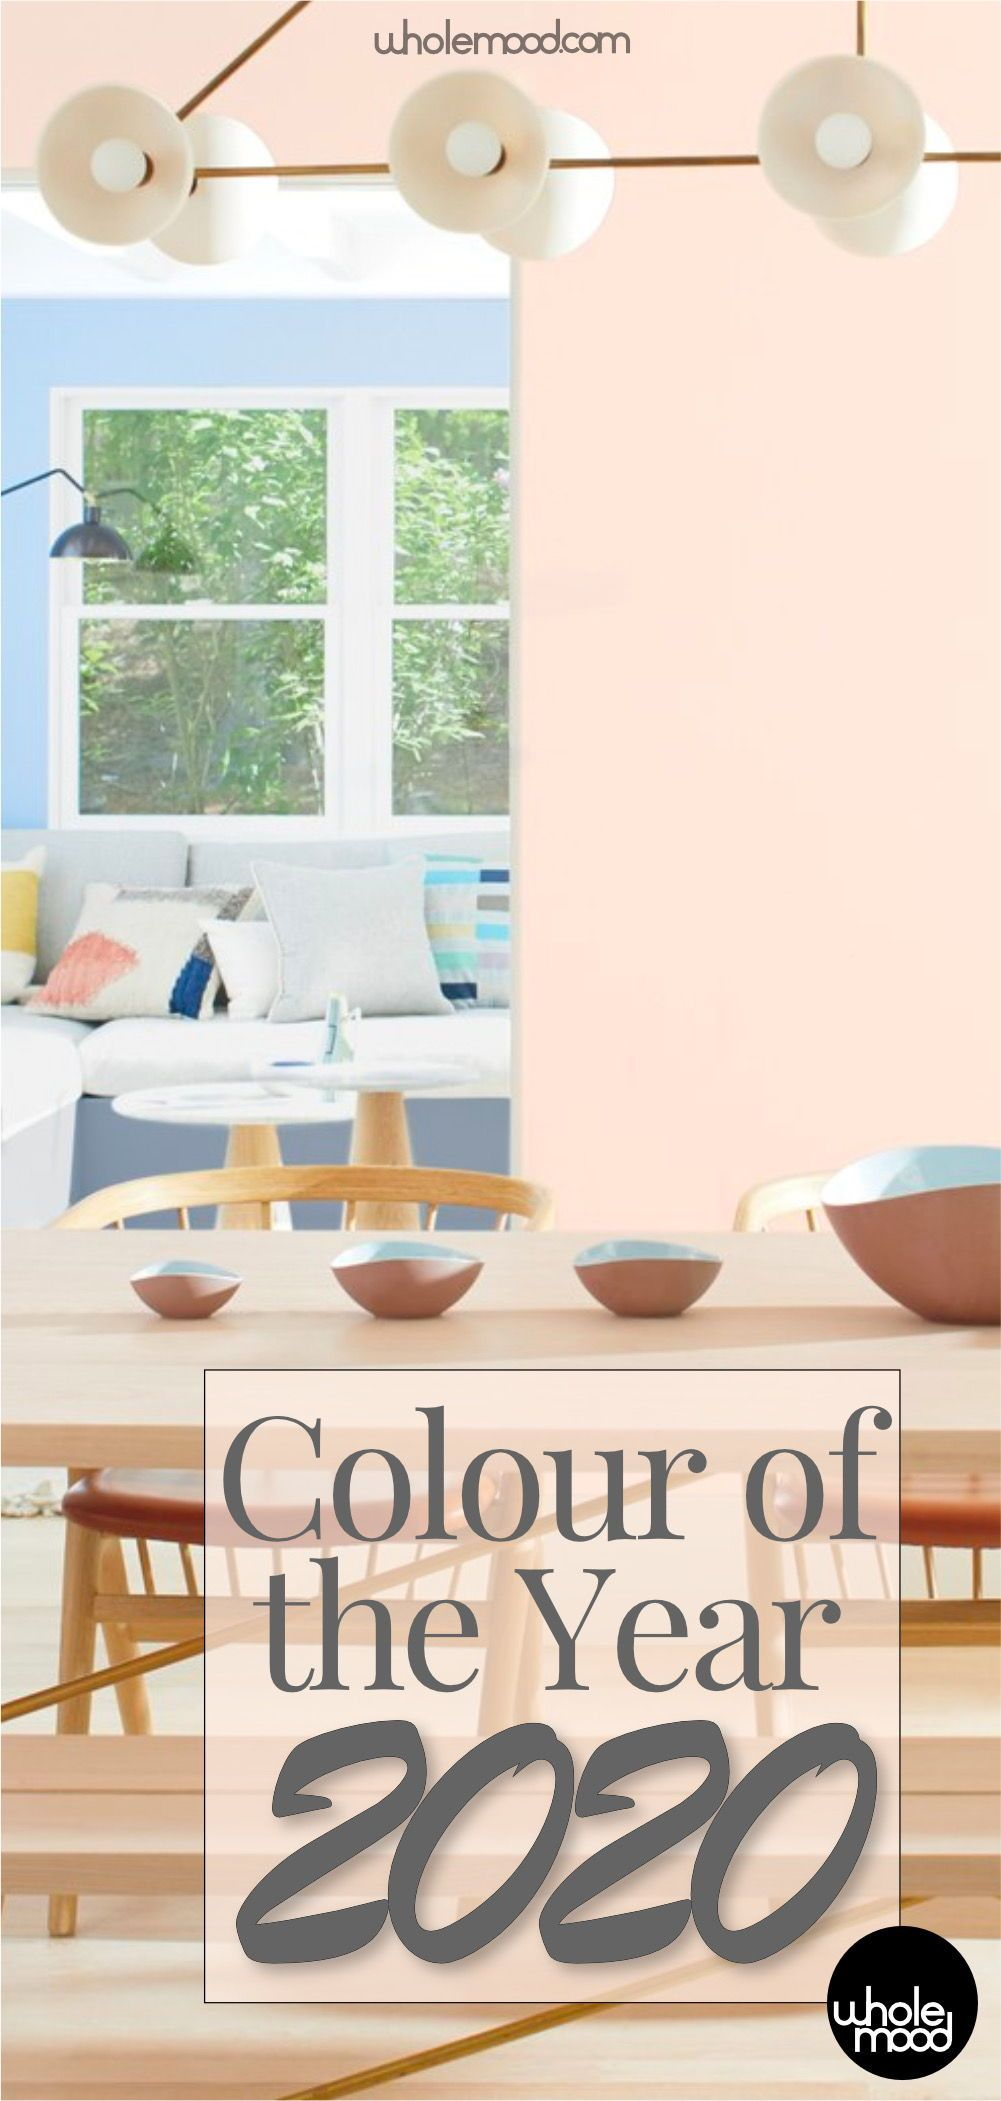 2020 2021 colour of the year new decade cool new tone on sherwin williams 2021 color trends id=72458